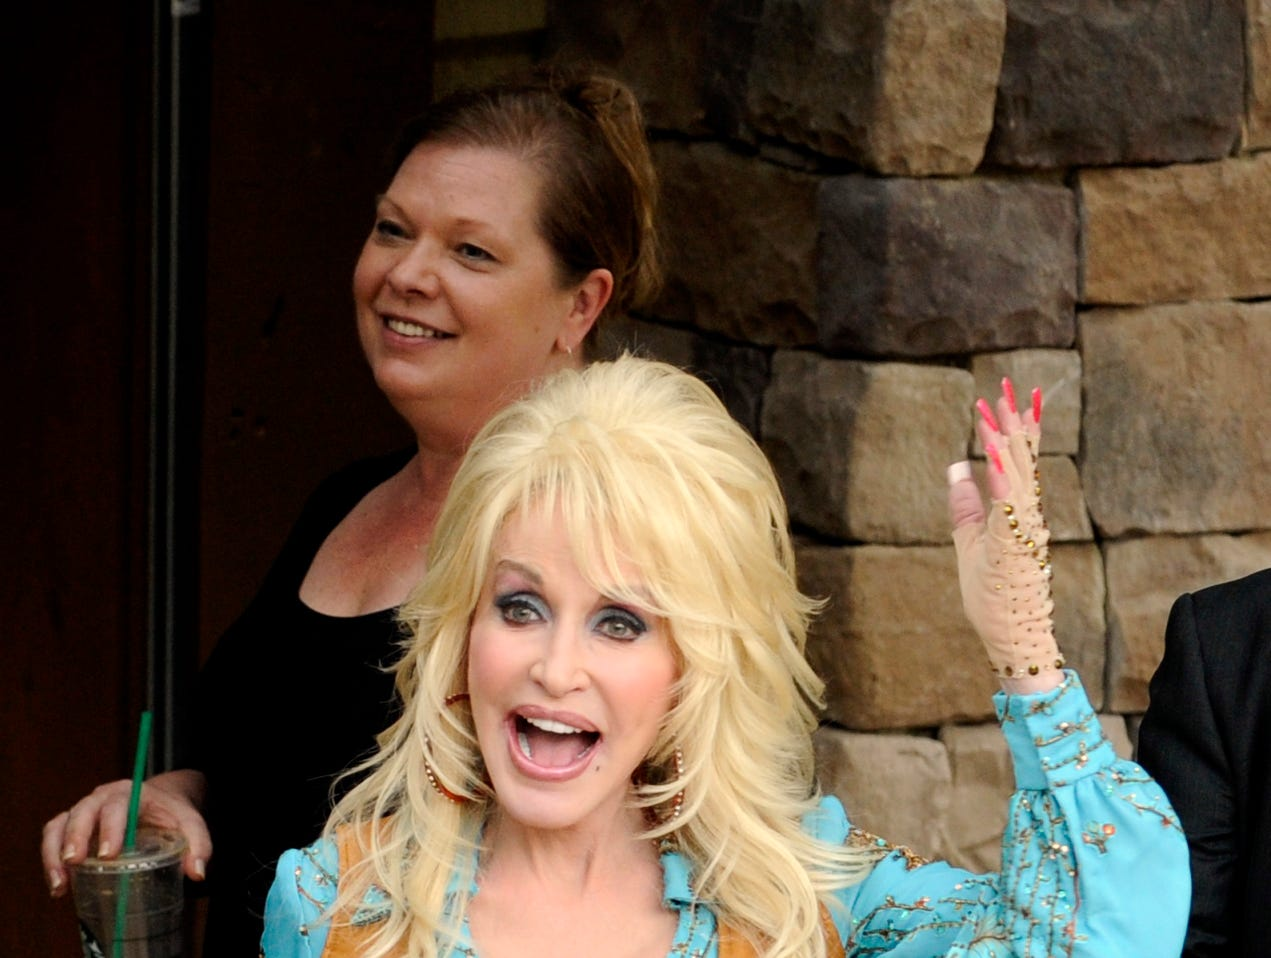 Dolly Parton performs on opening day of the Dollywood season Friday, March 23, 2012 in Pigeon Forge.